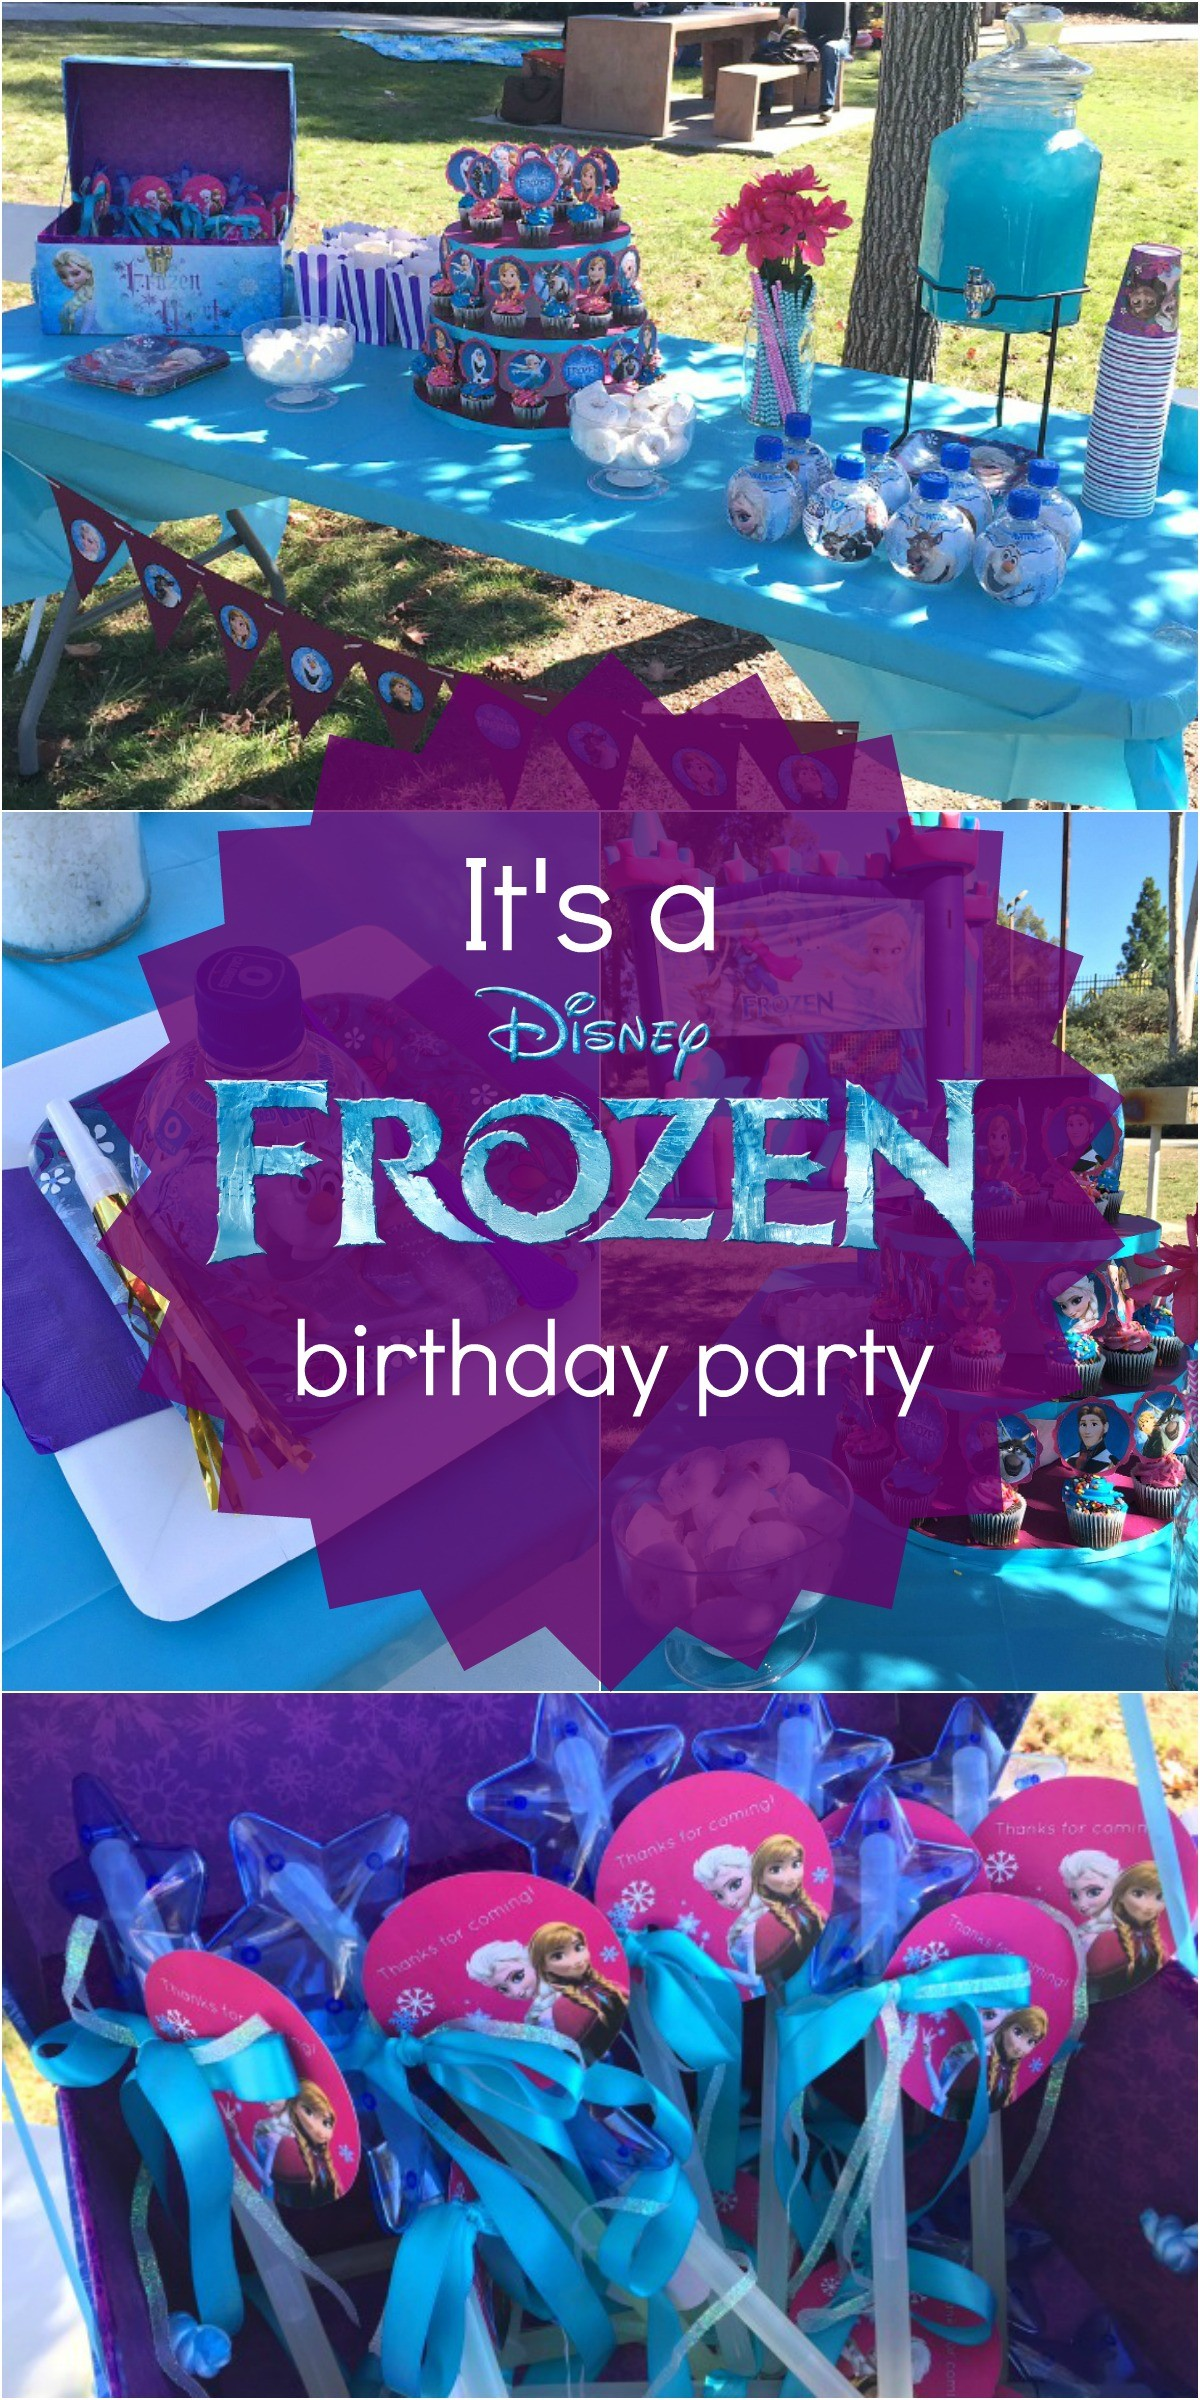 Disneys Frozen Birthday Party Ideas Pink Purple Blue A Jumper